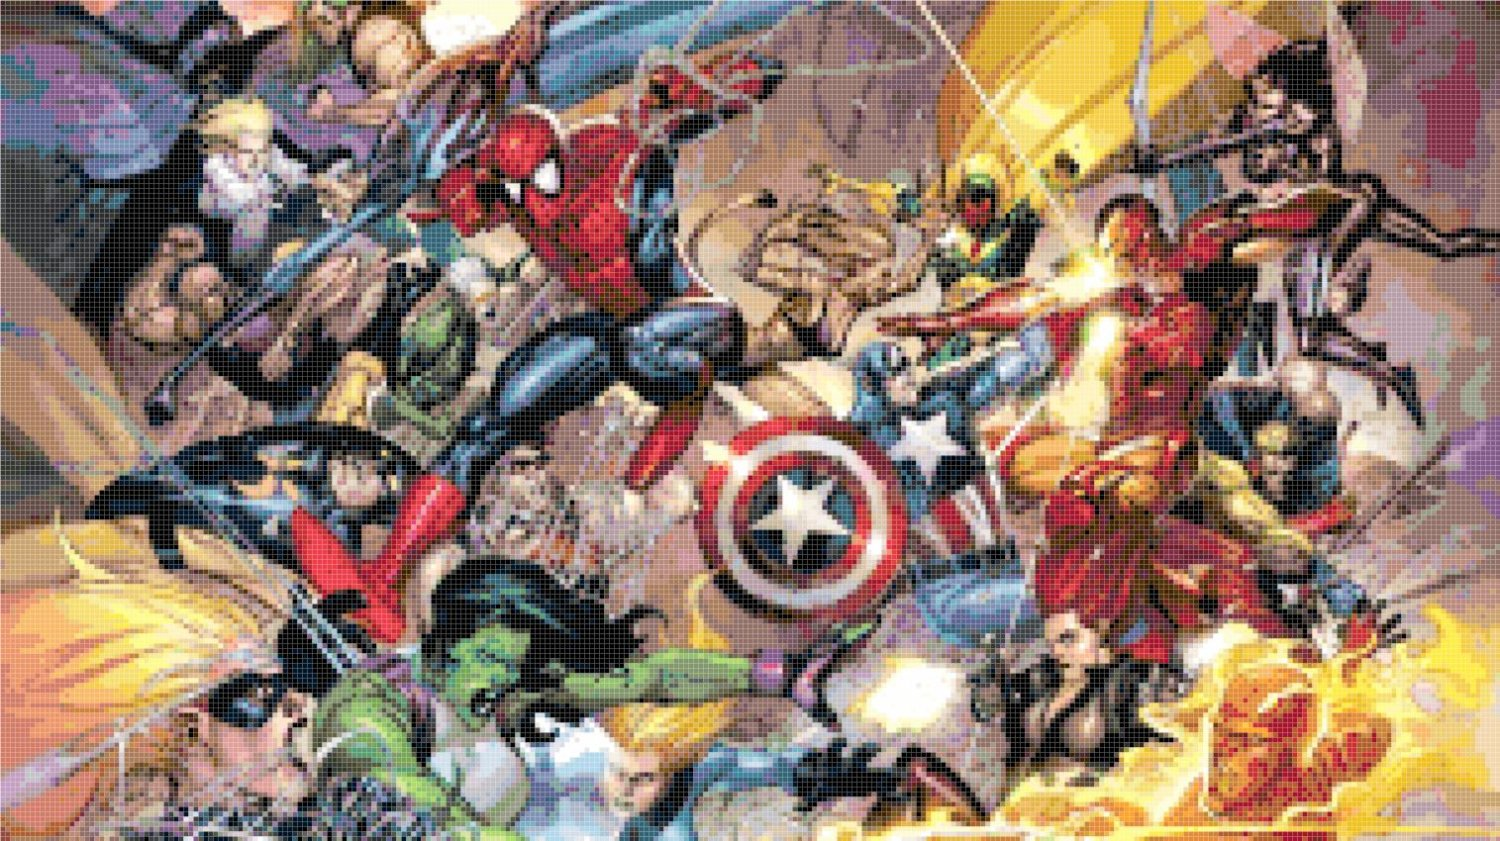 counted cross stitch pattern Marvel superheroes 303*171 stitches E552